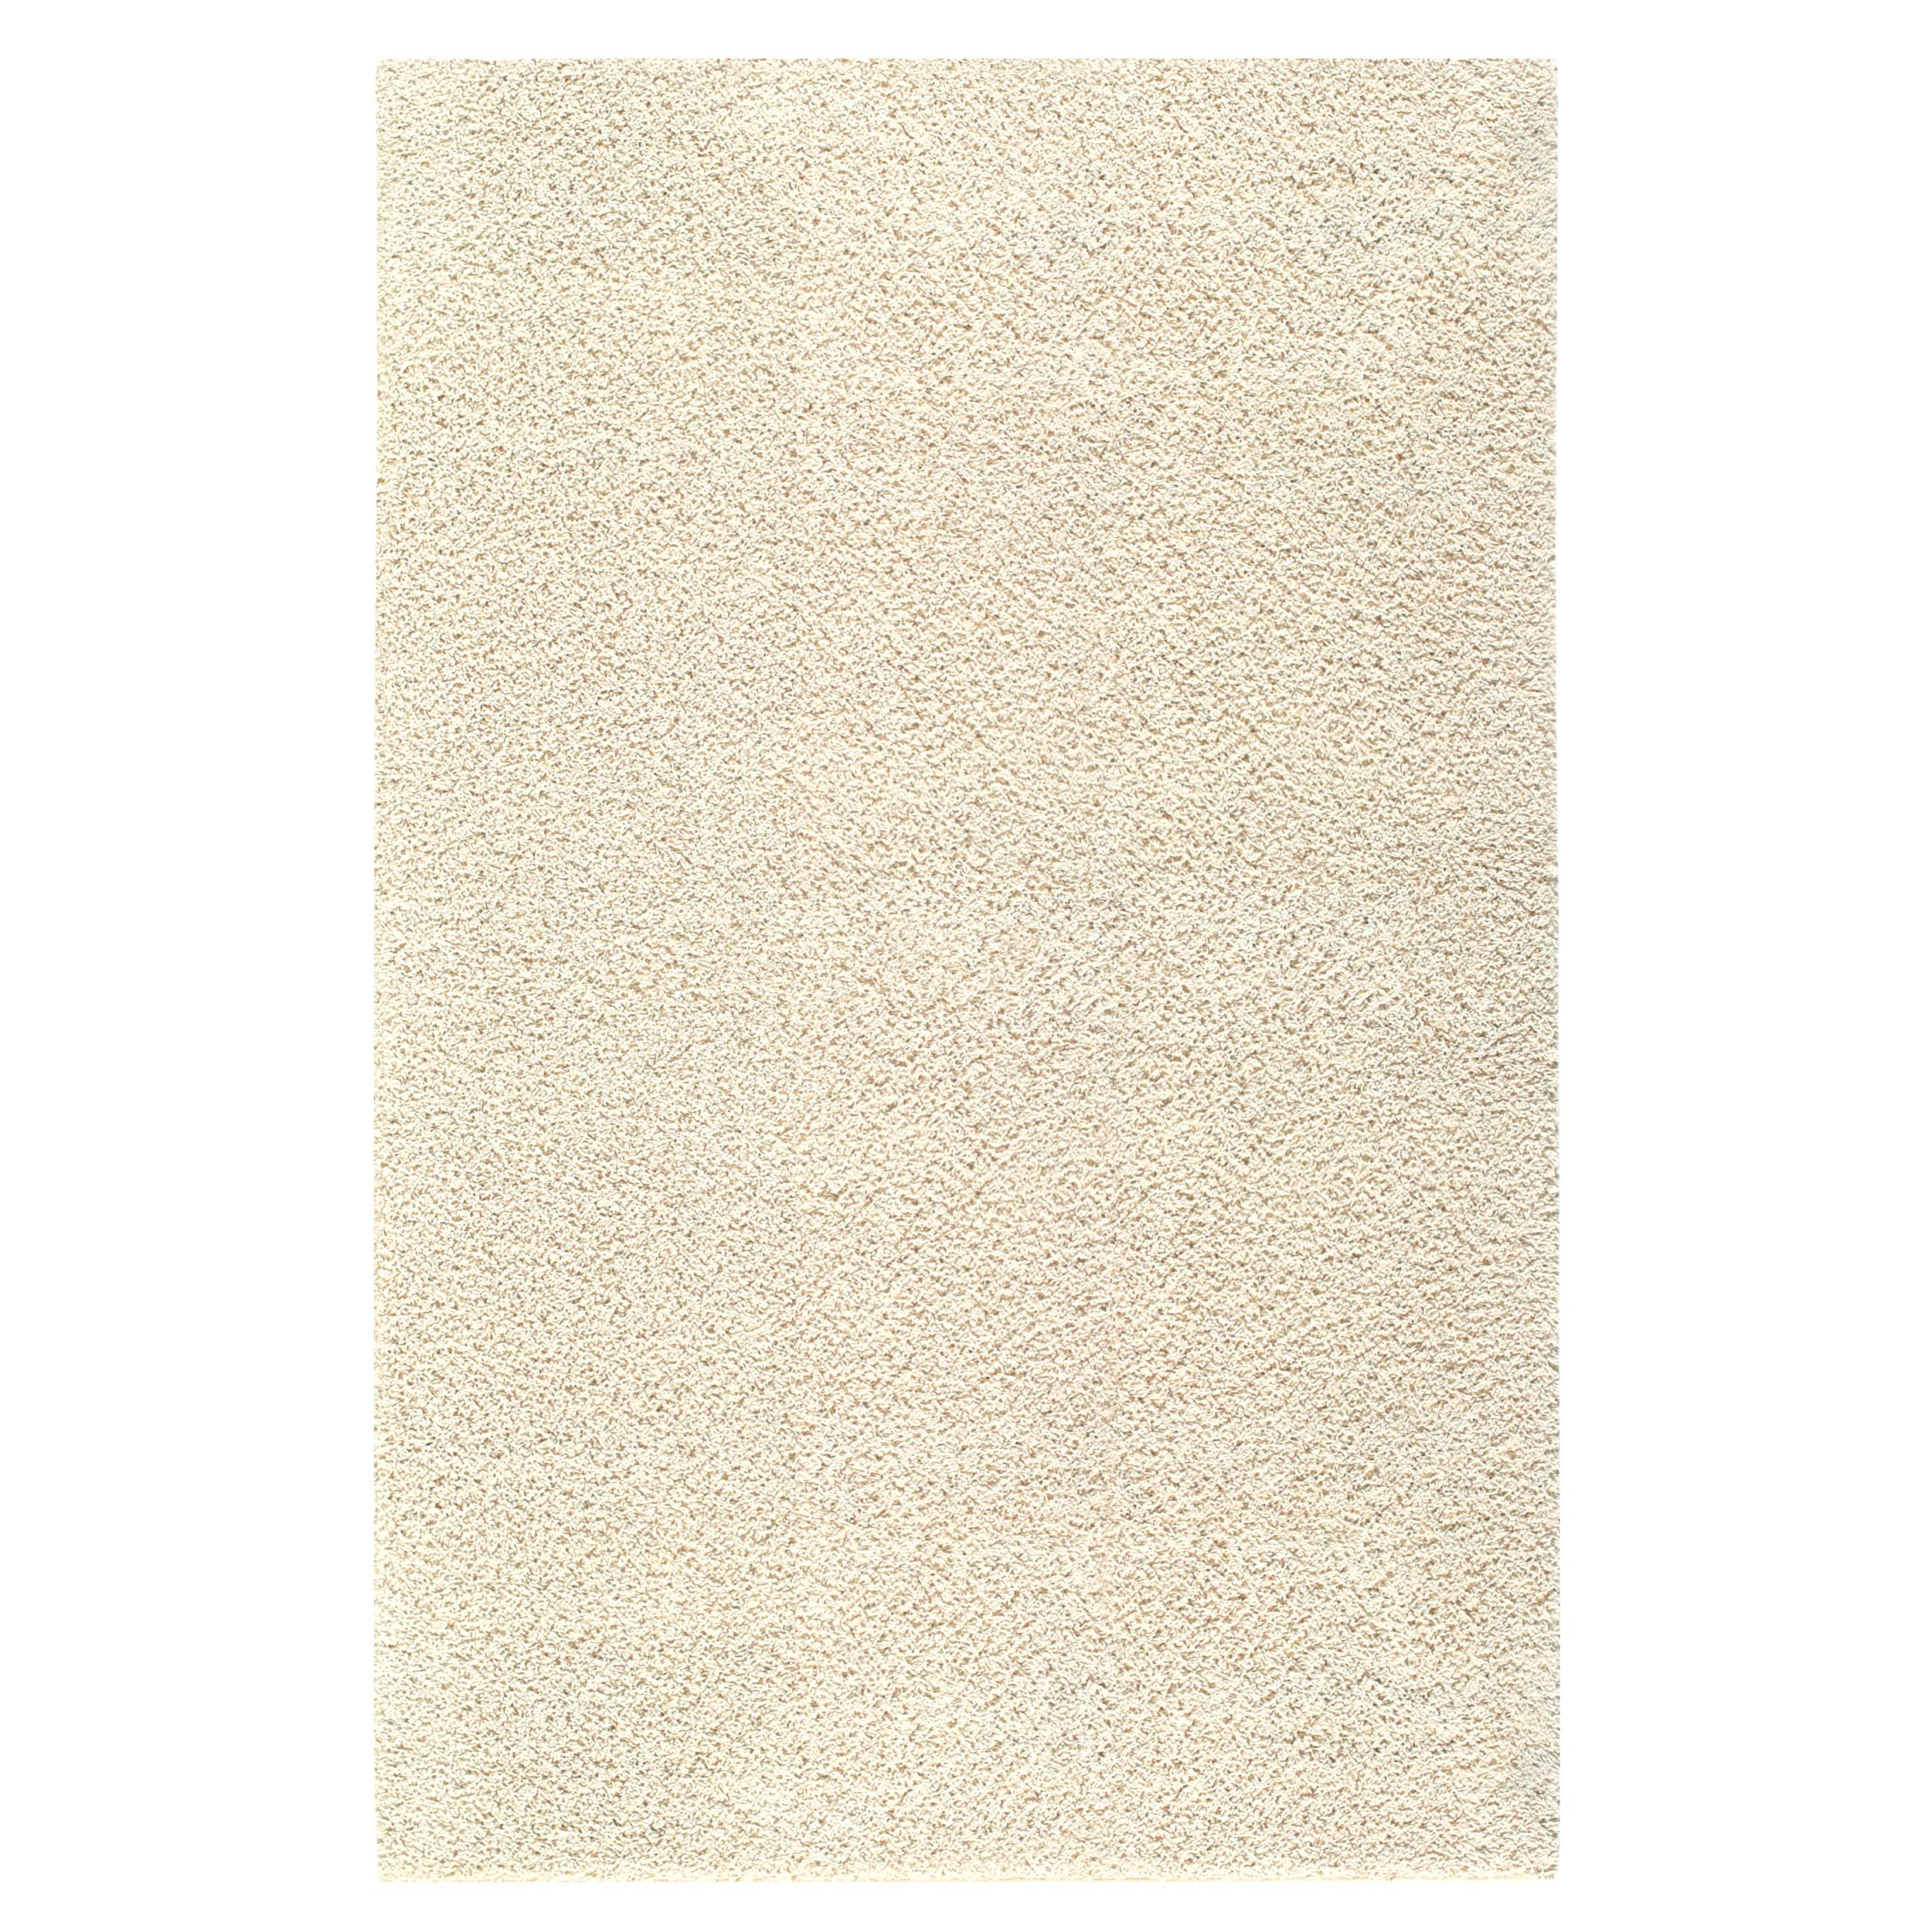 this plush shag rug is enhanced with a warm beige hue. with a